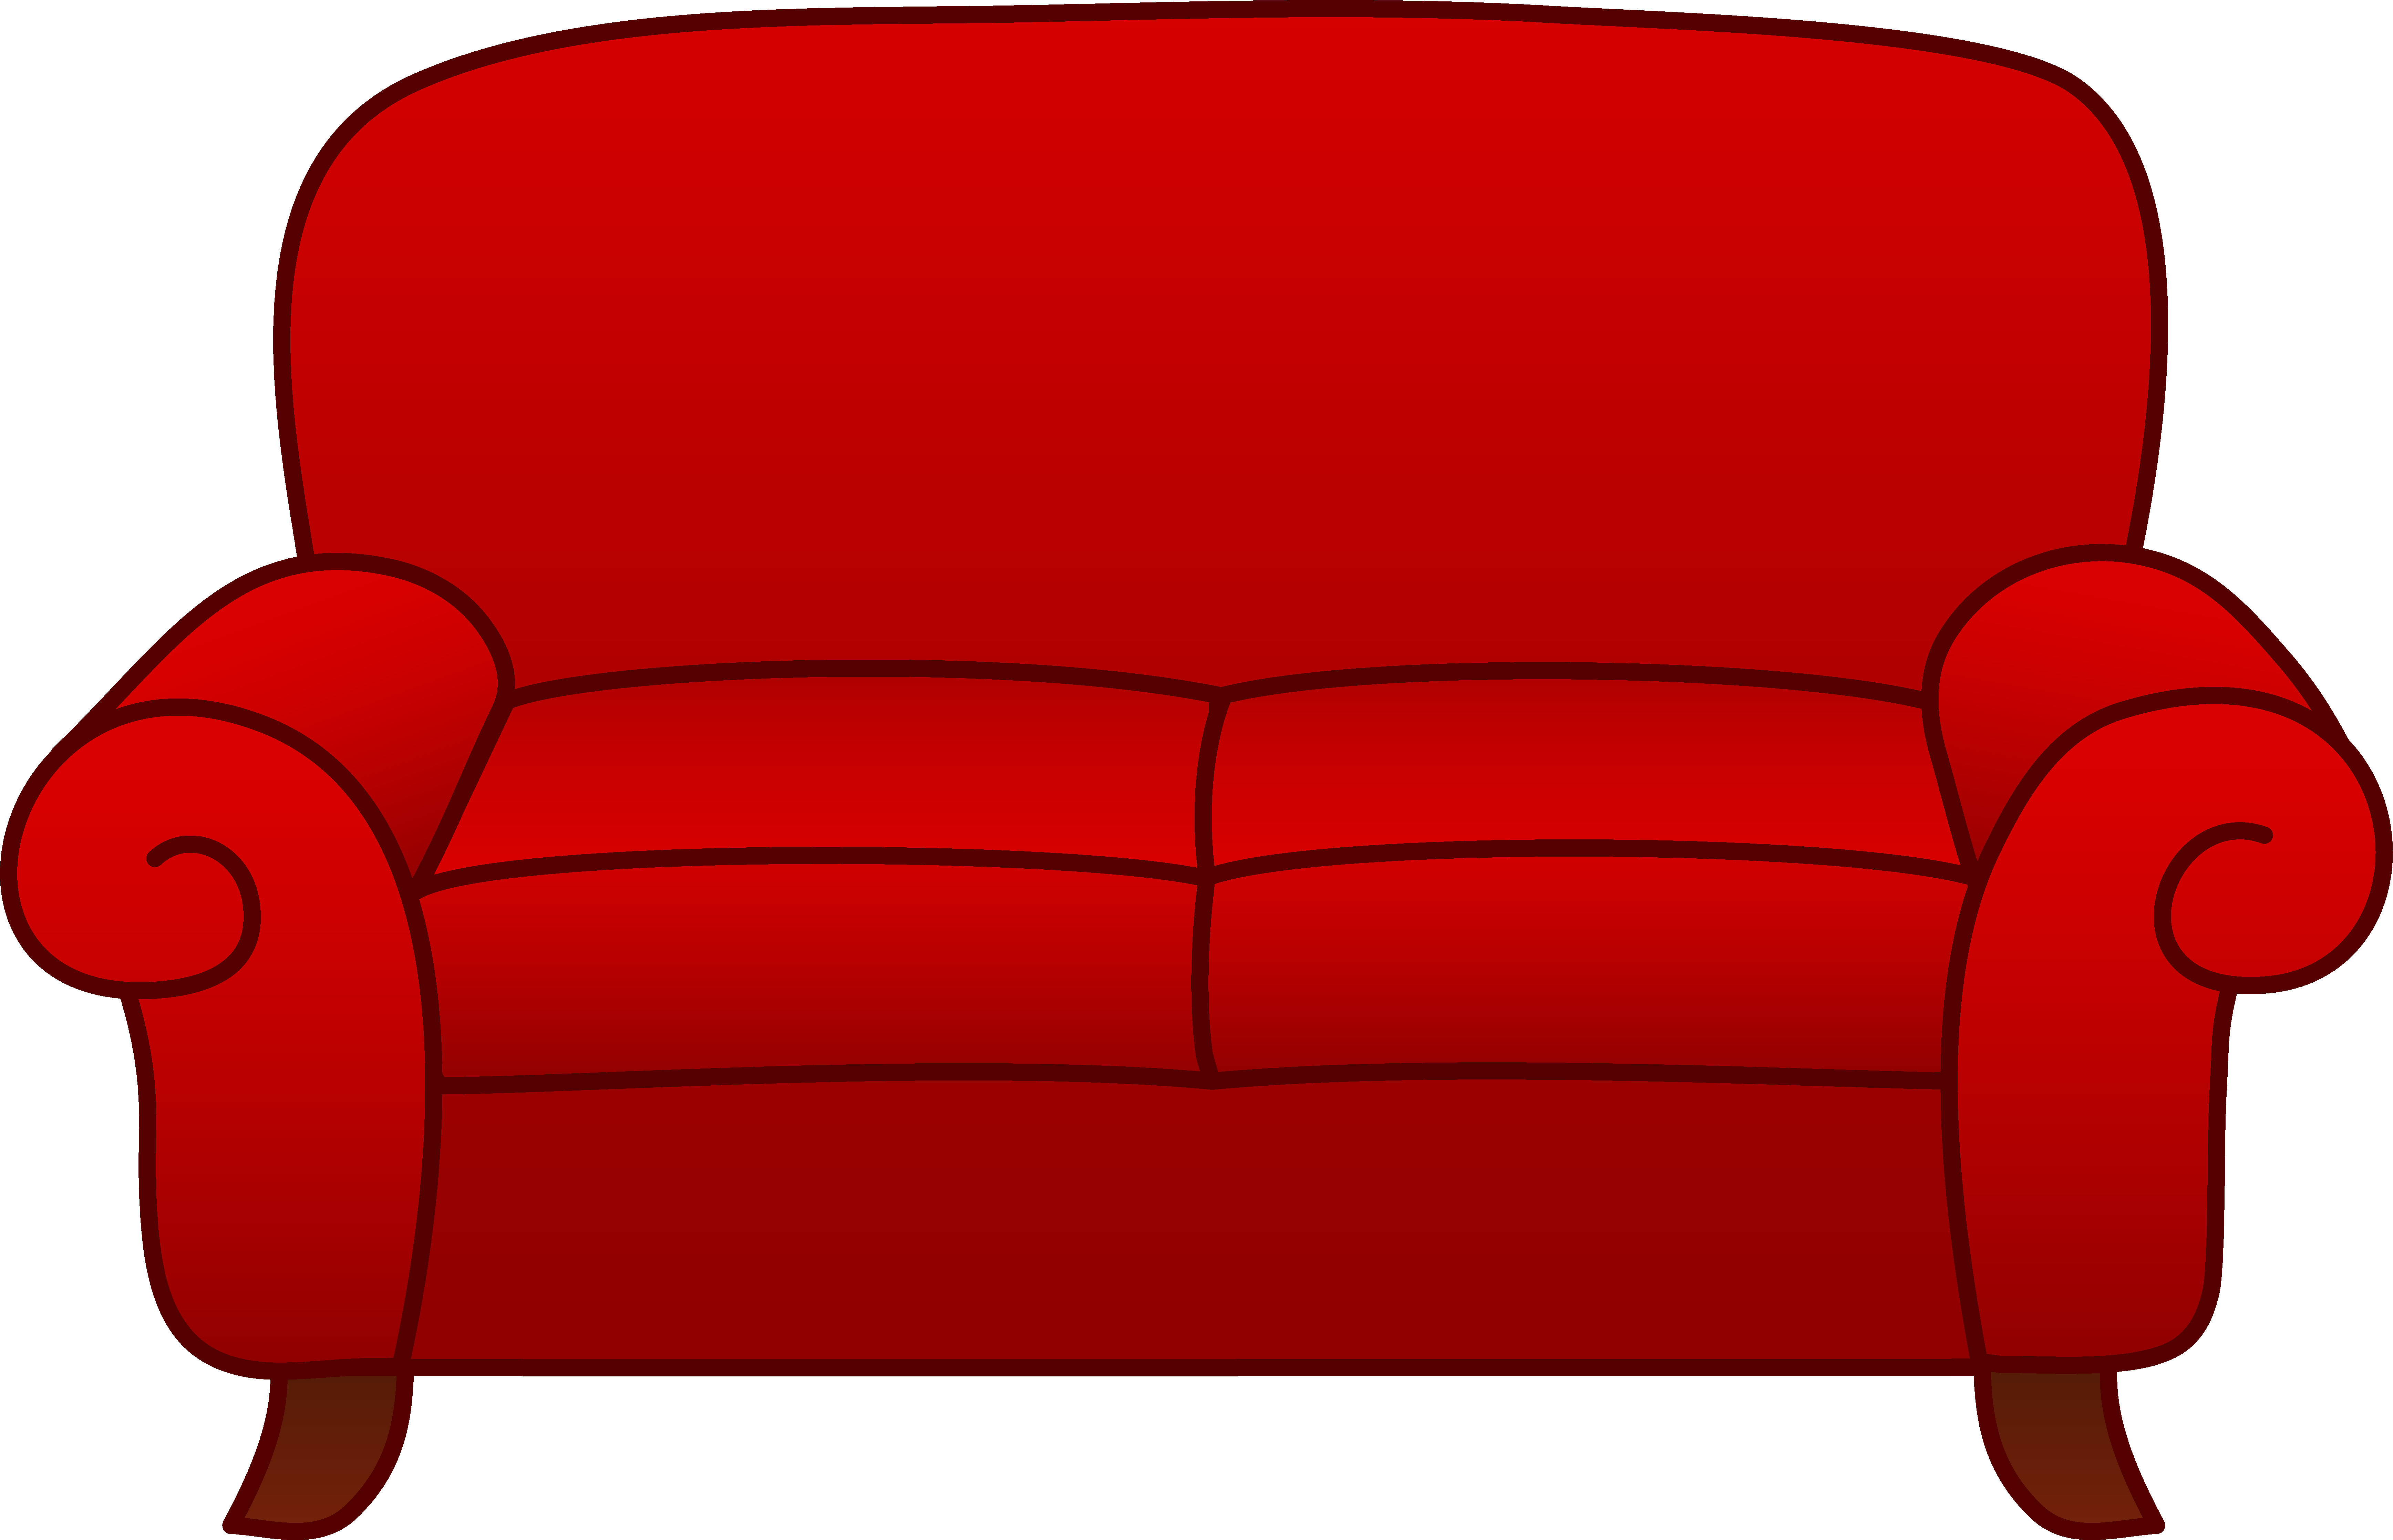 Leather sofa clipart #4